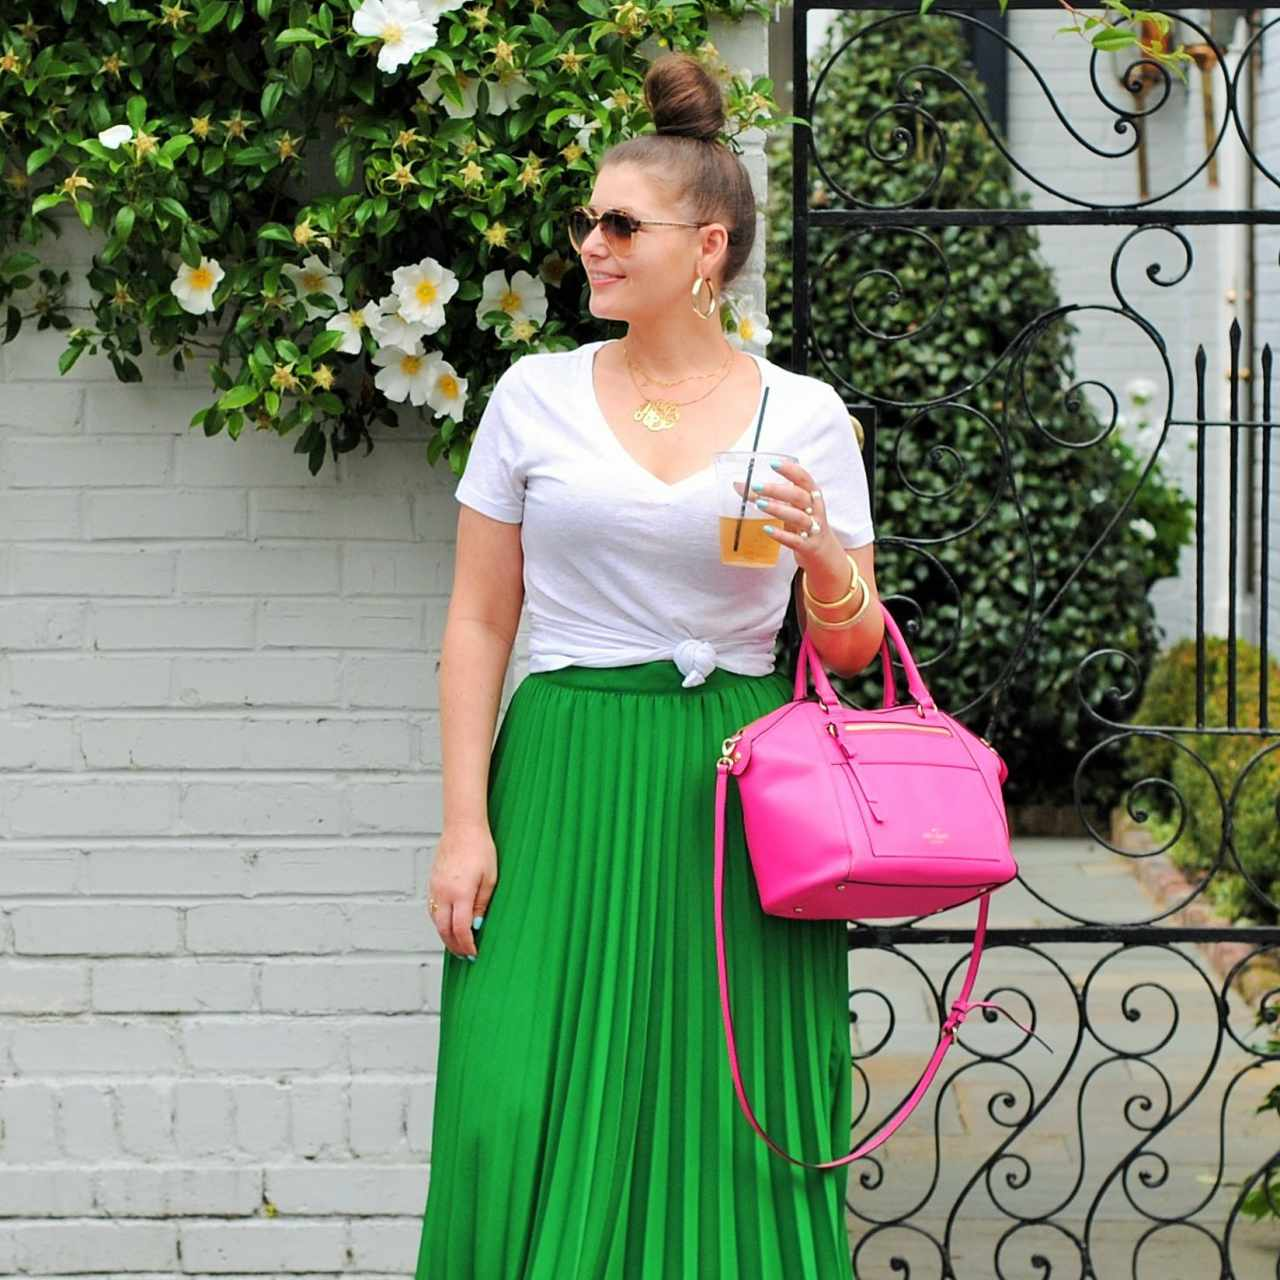 Woman in white t-shirt and green pleated maxi skirt